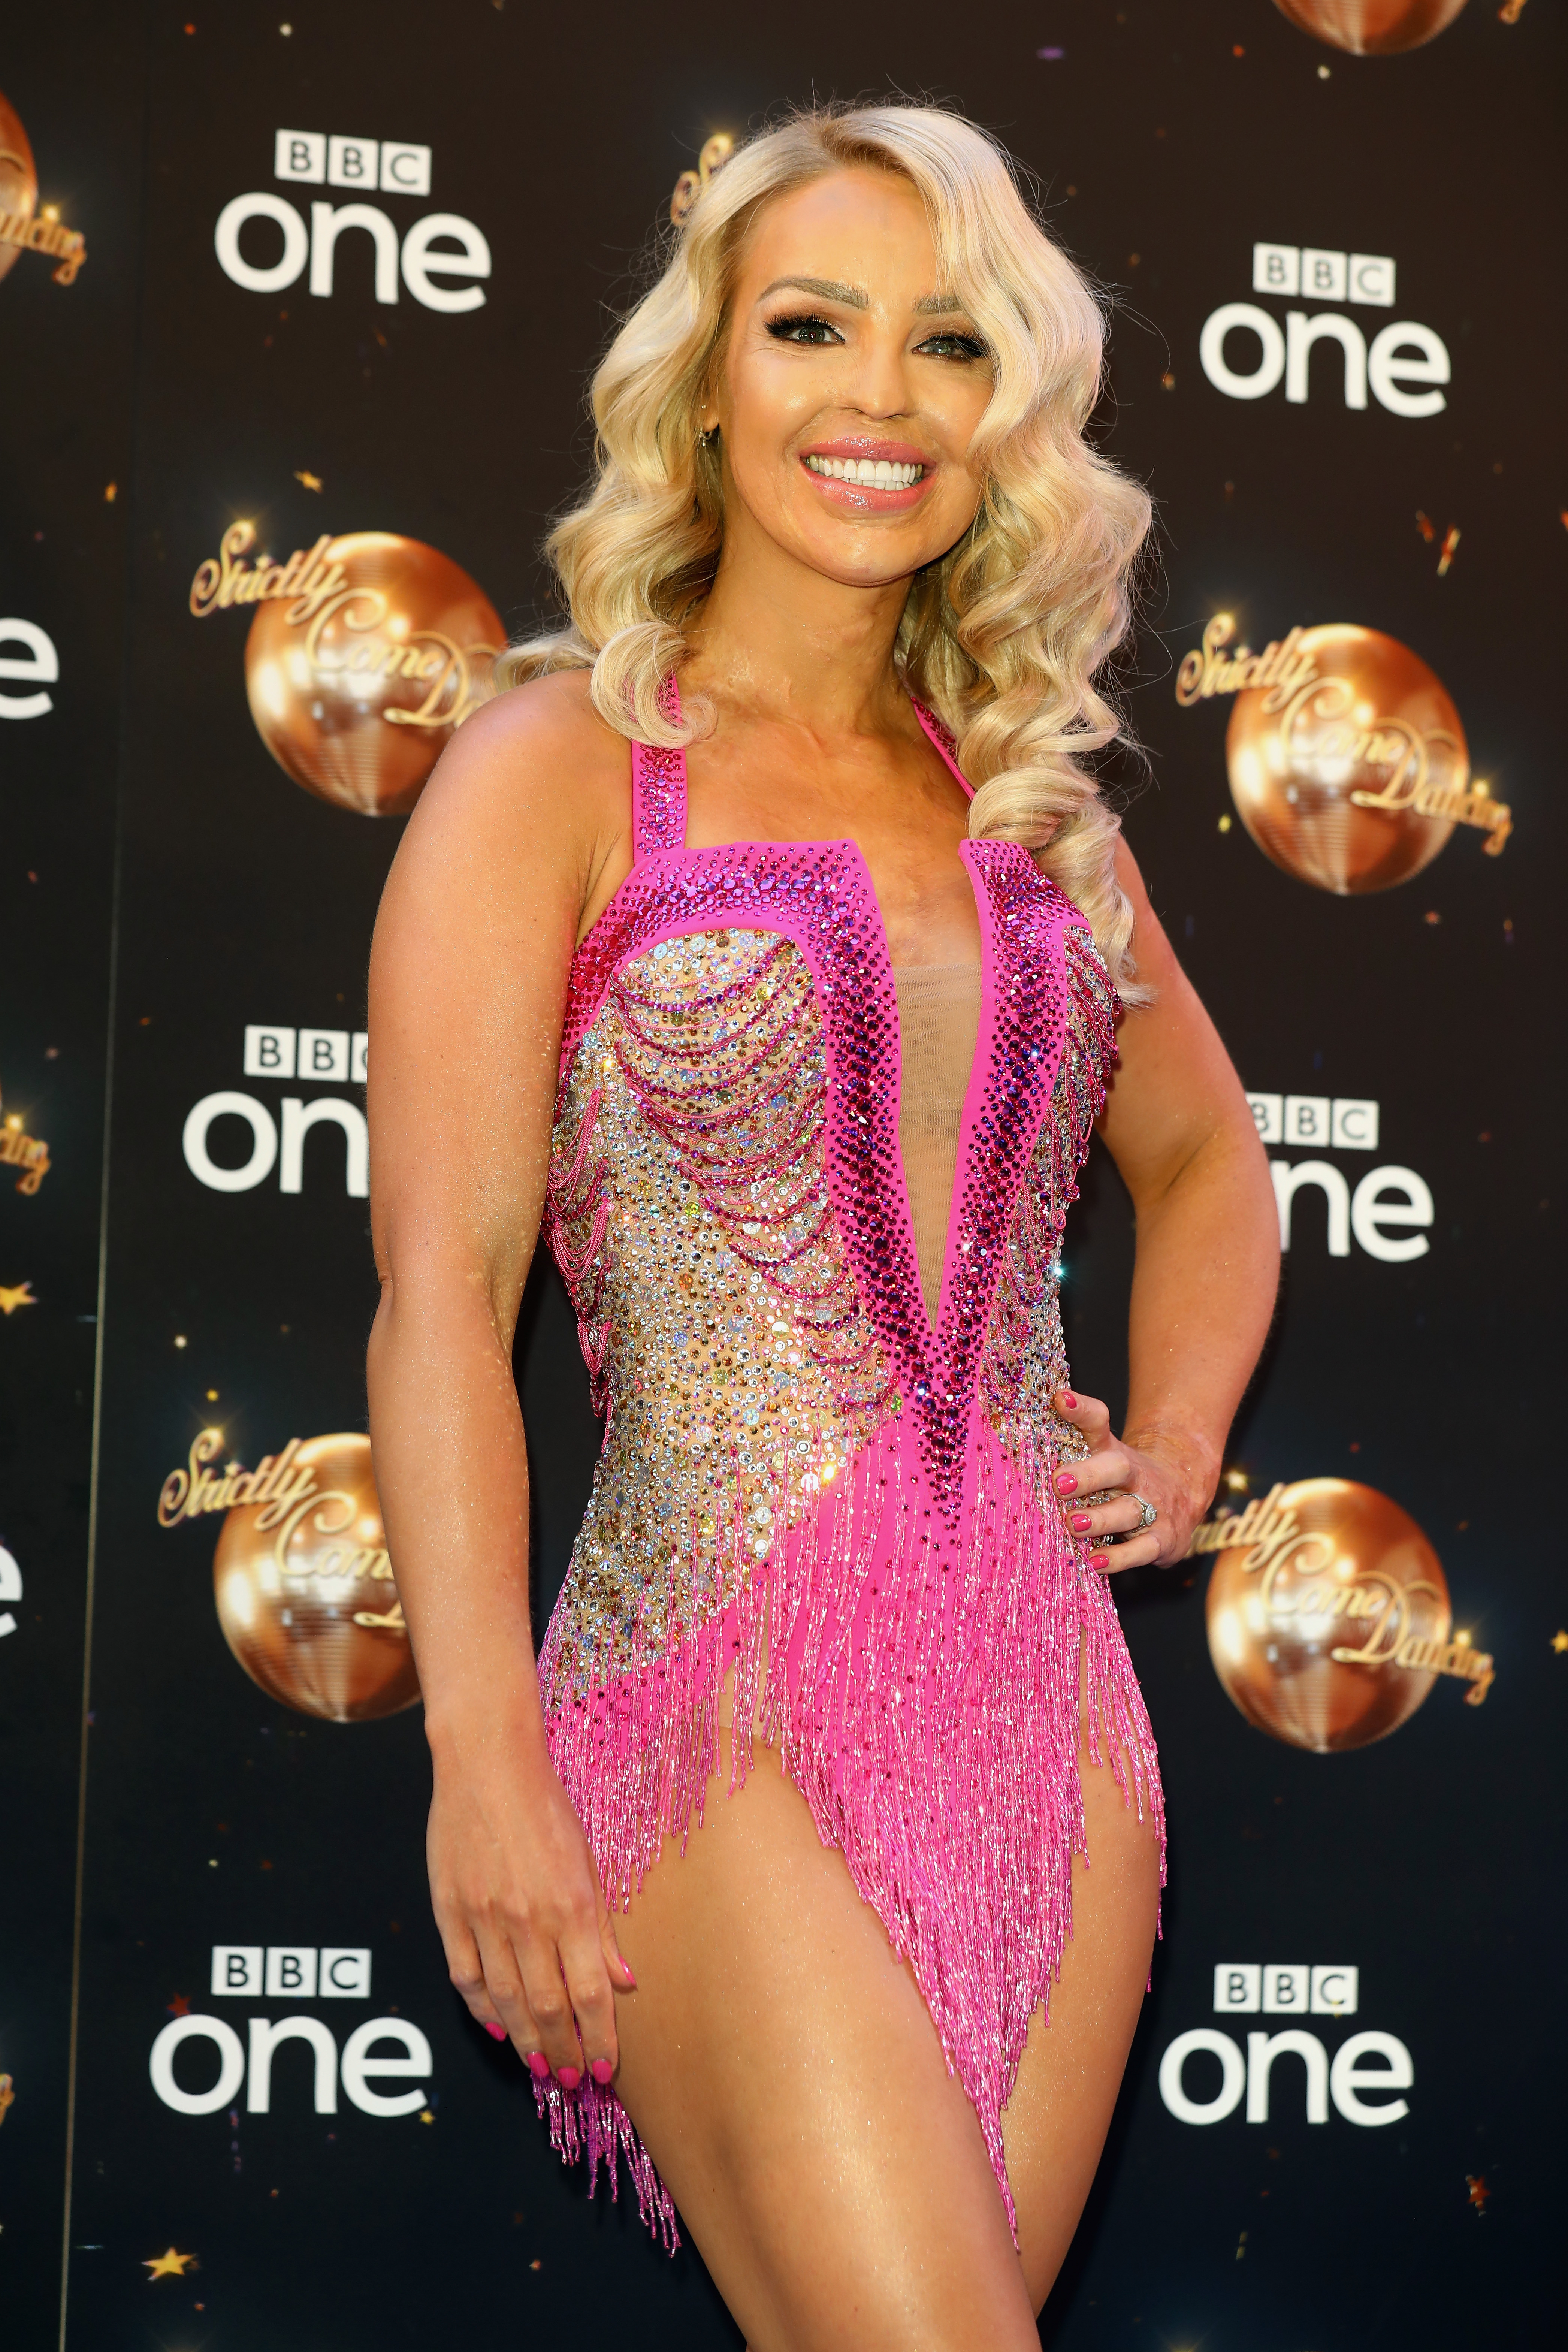 Katie Piper attends the red carpet launch for 'Strictly Come Dancing 2018' at Old Broadcasting House on August 27, 2018, in London, England. (Getty)